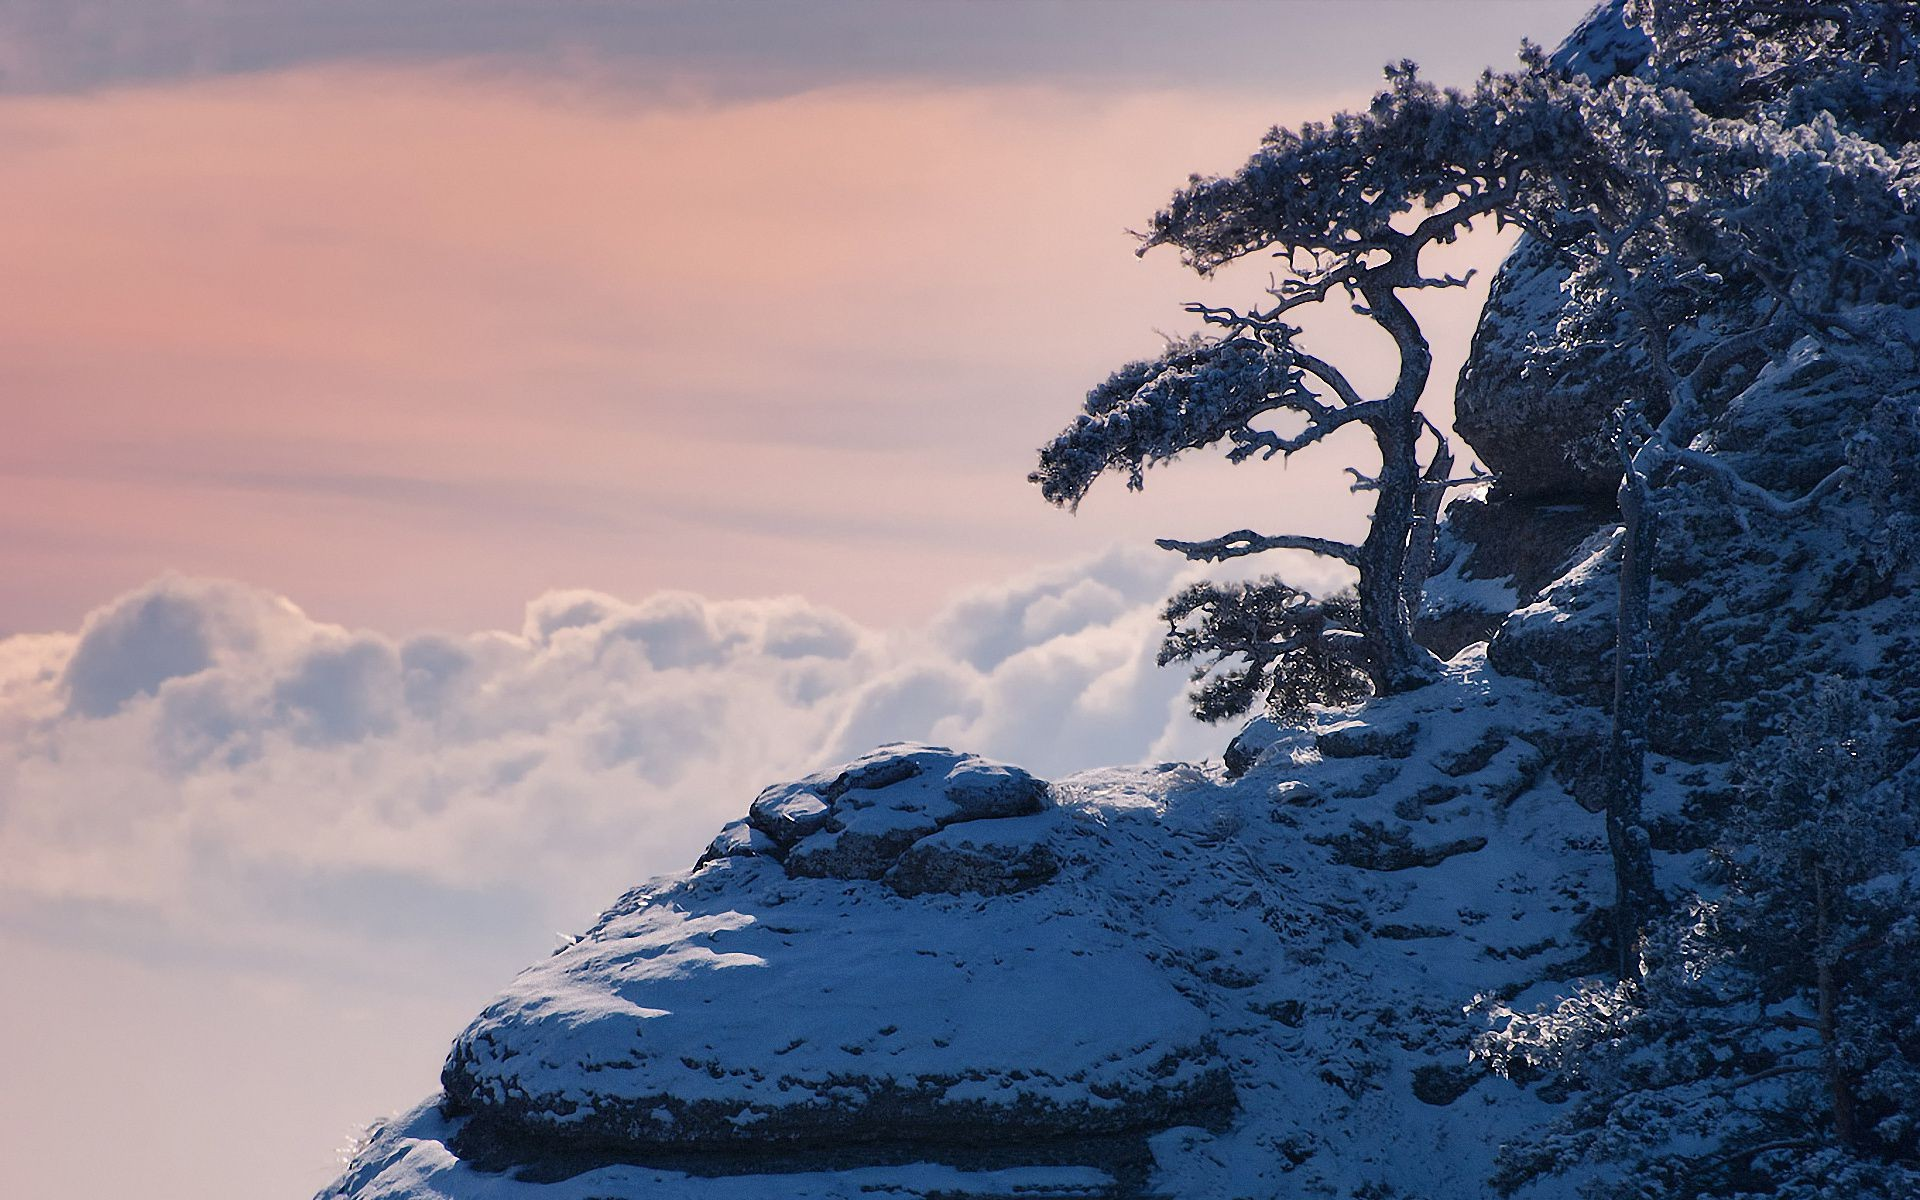 Crimea clouds winter snow mountains pine trees